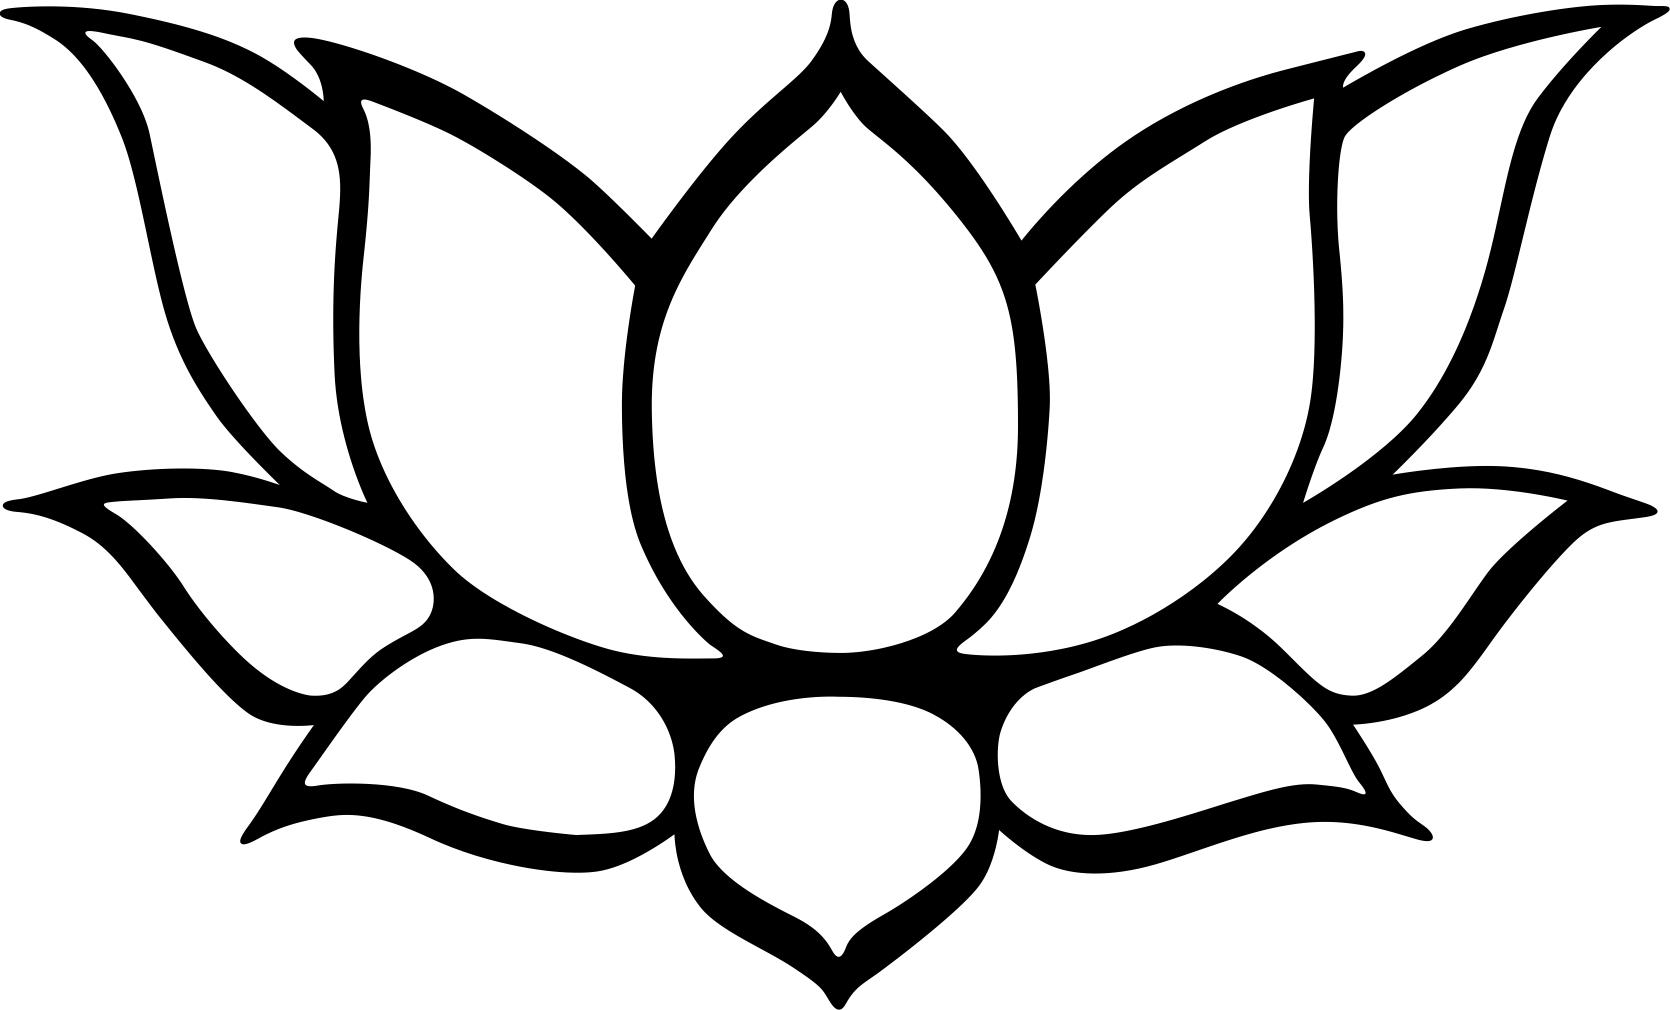 1670x1010 Clip Art Black And White Lotus Flower Clipart